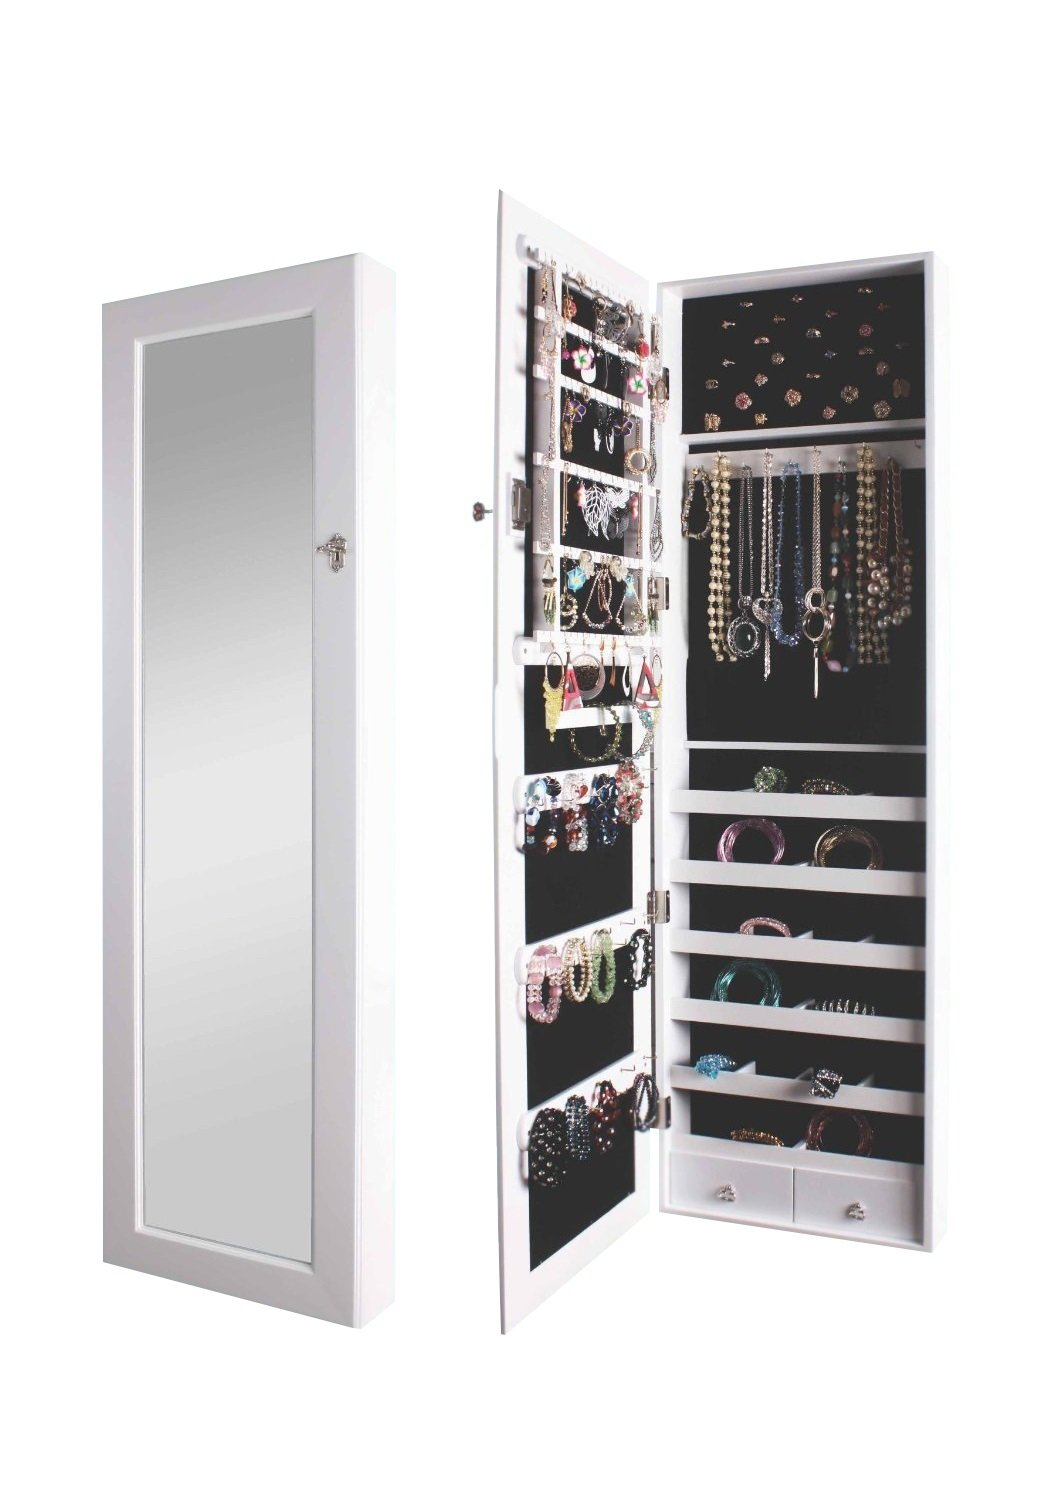 BTEXPERT Premium LED light Wooden Jewelry Armoire Wall Mount Cabinet with Mirror and Drawers